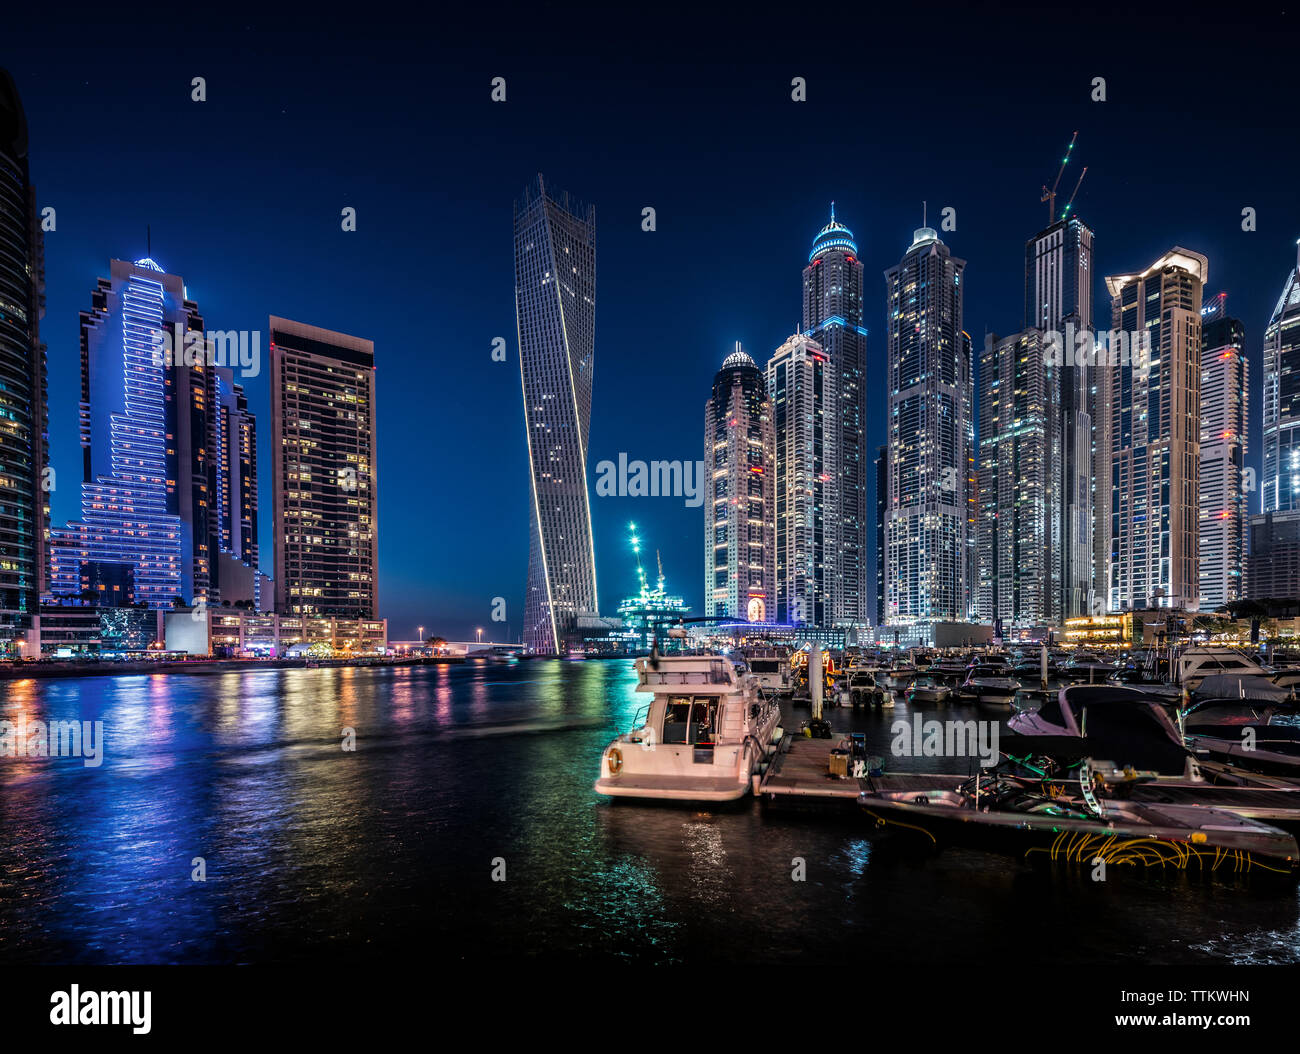 River and illuminated cityscape against blue sky at night - Stock Image